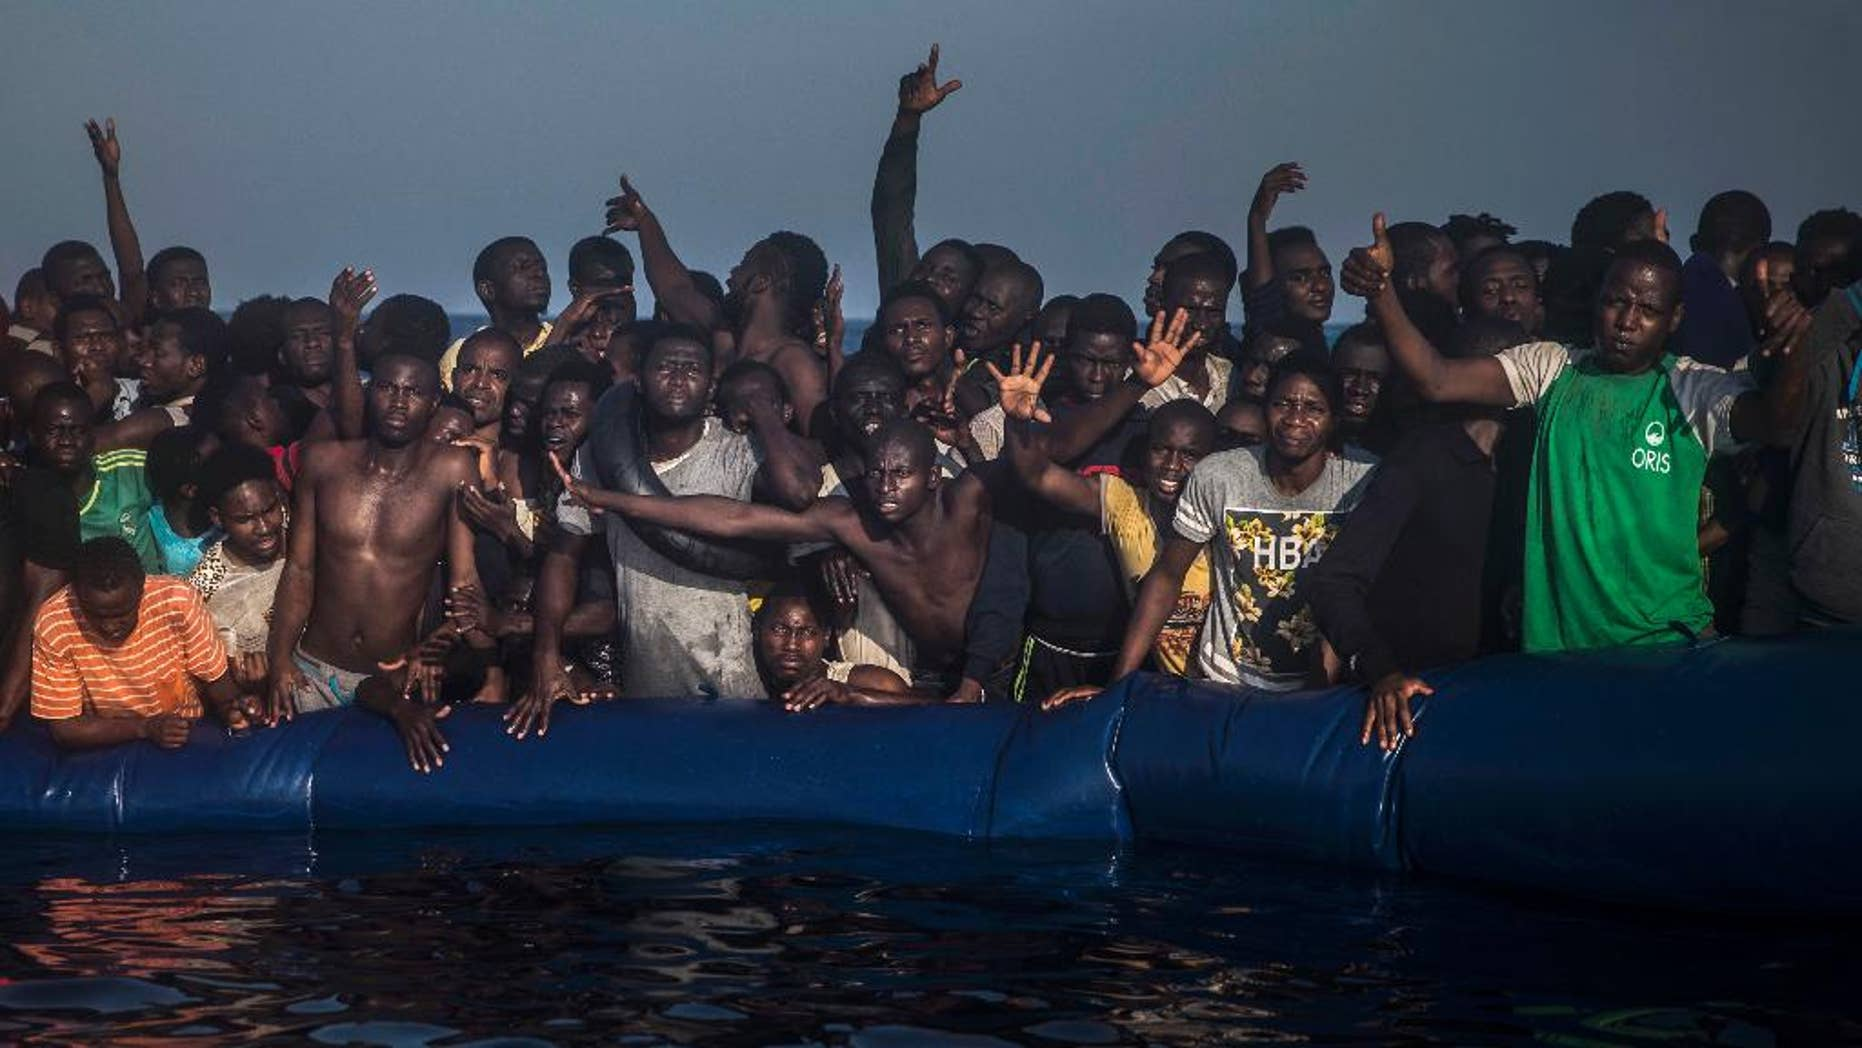 FILE- In this Saturday Sept. 10, 2016 file photo, African refugees and migrants react aboard a partially punctured rubber boat as they wait to be assisted , during a rescue operation on the Mediterranean Sea, about 13 miles North of Sabratha, Lybia. A popular Gambian wrestler has drowned trying to cross the Mediterranean Sea, the second high-profile athlete from the West African nation in the space of a few weeks to die trying to get to Europe on a boat of migrants. (AP Photo/Santi Palacios File)